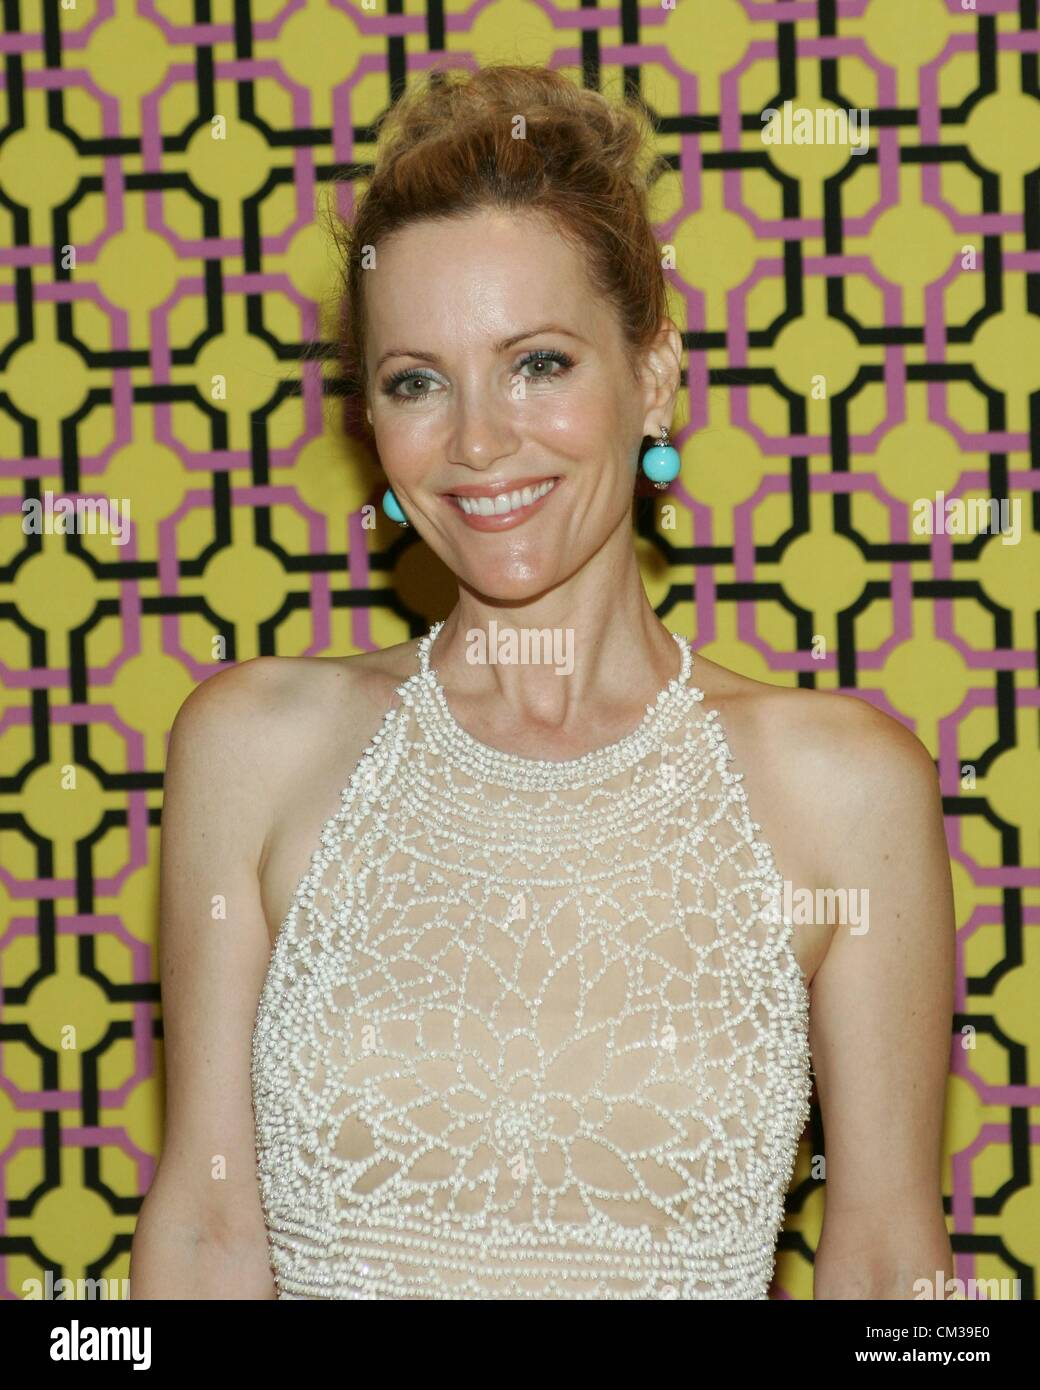 Leslie Mann arrivals HBO Emmy Awards After PartyPlaza atPacific Design Center Los Angeles CA September 23 2012 Photo - Stock Image